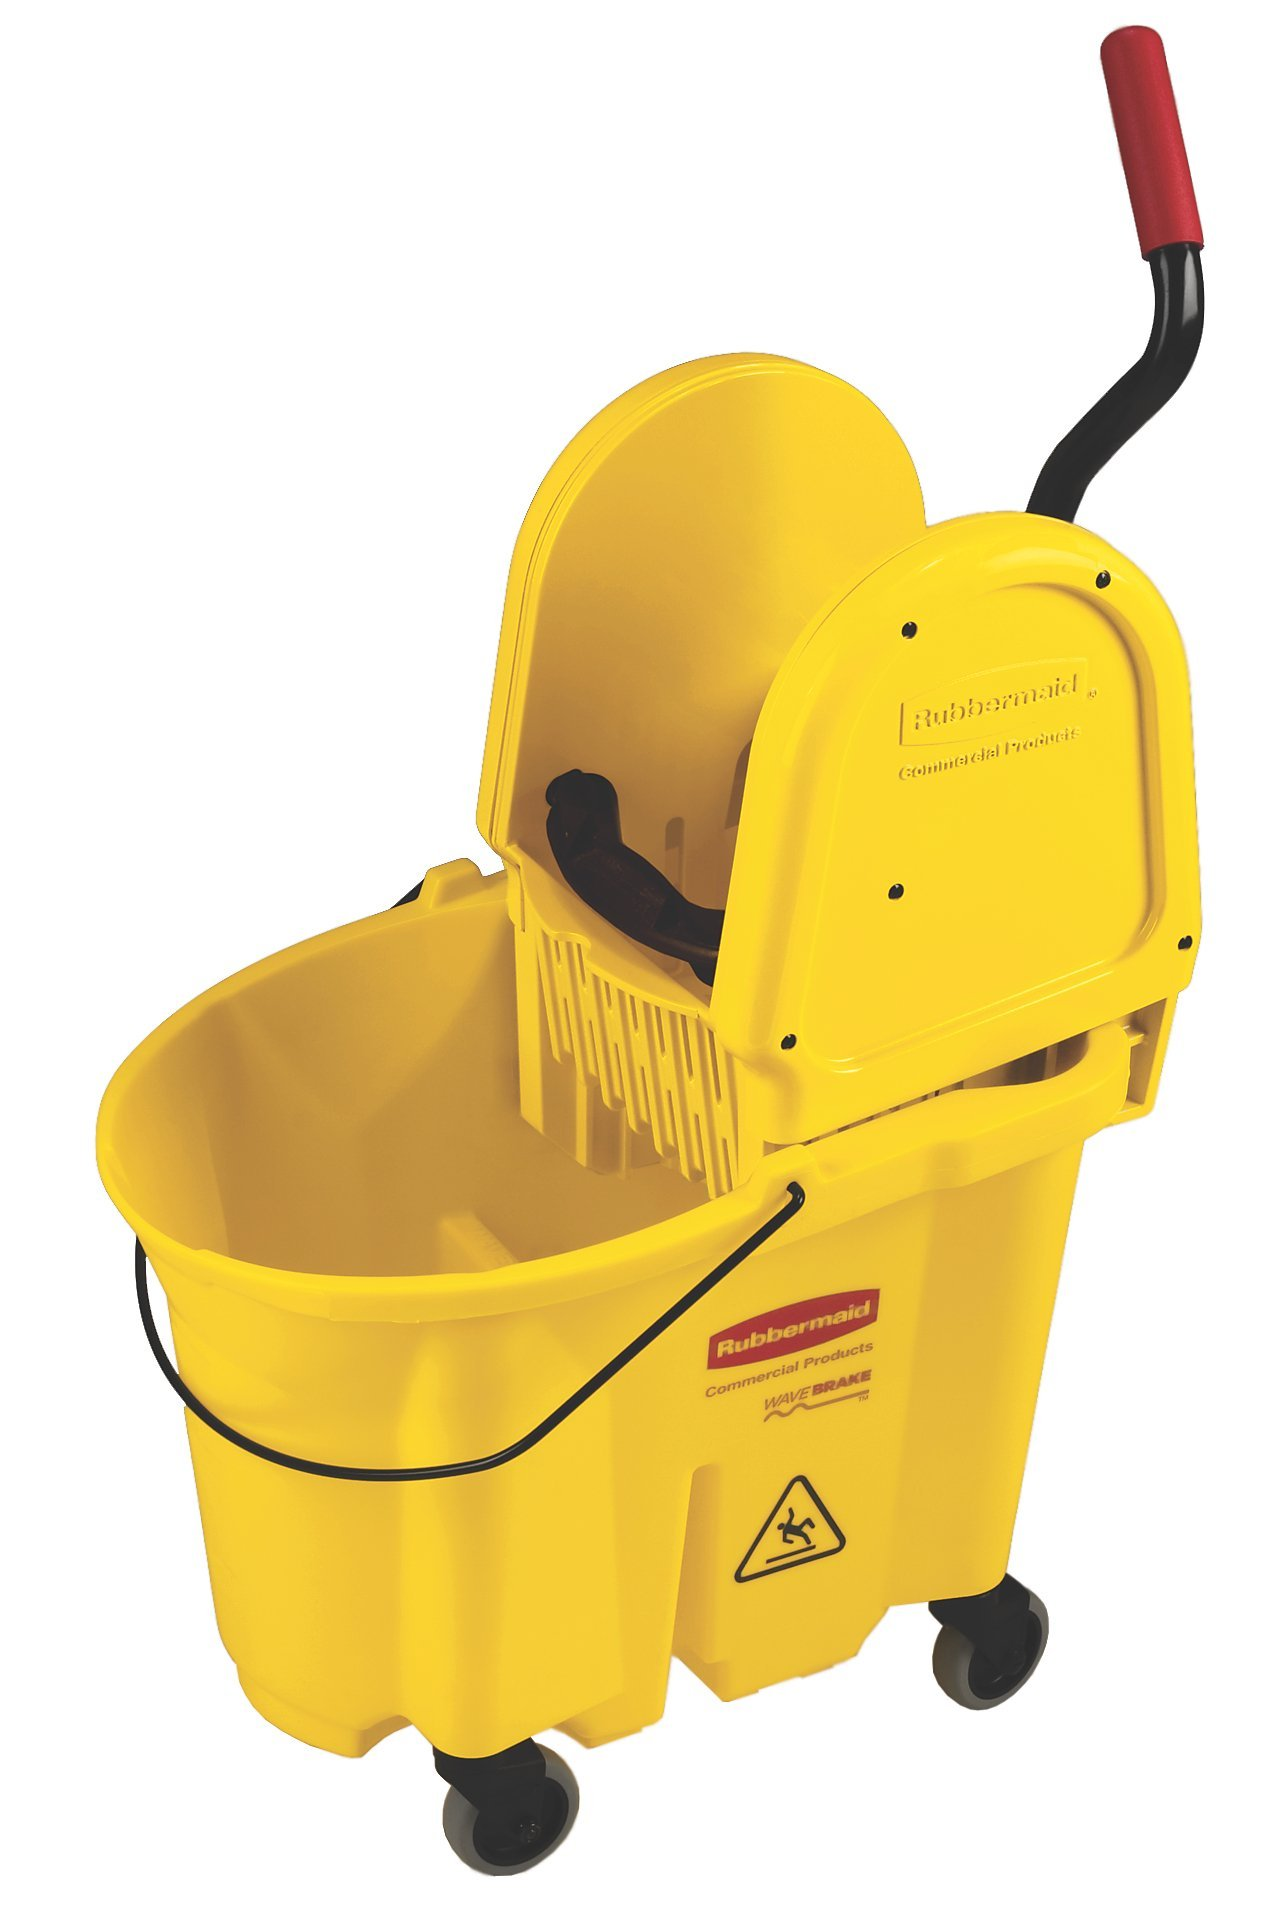 Rubbermaid Commercial WaveBrake Mop Bucket with Down Press Wringer Institutional Combo, 35 Quart, Yellow, FG757900YEL by Rubbermaid Commercial Products